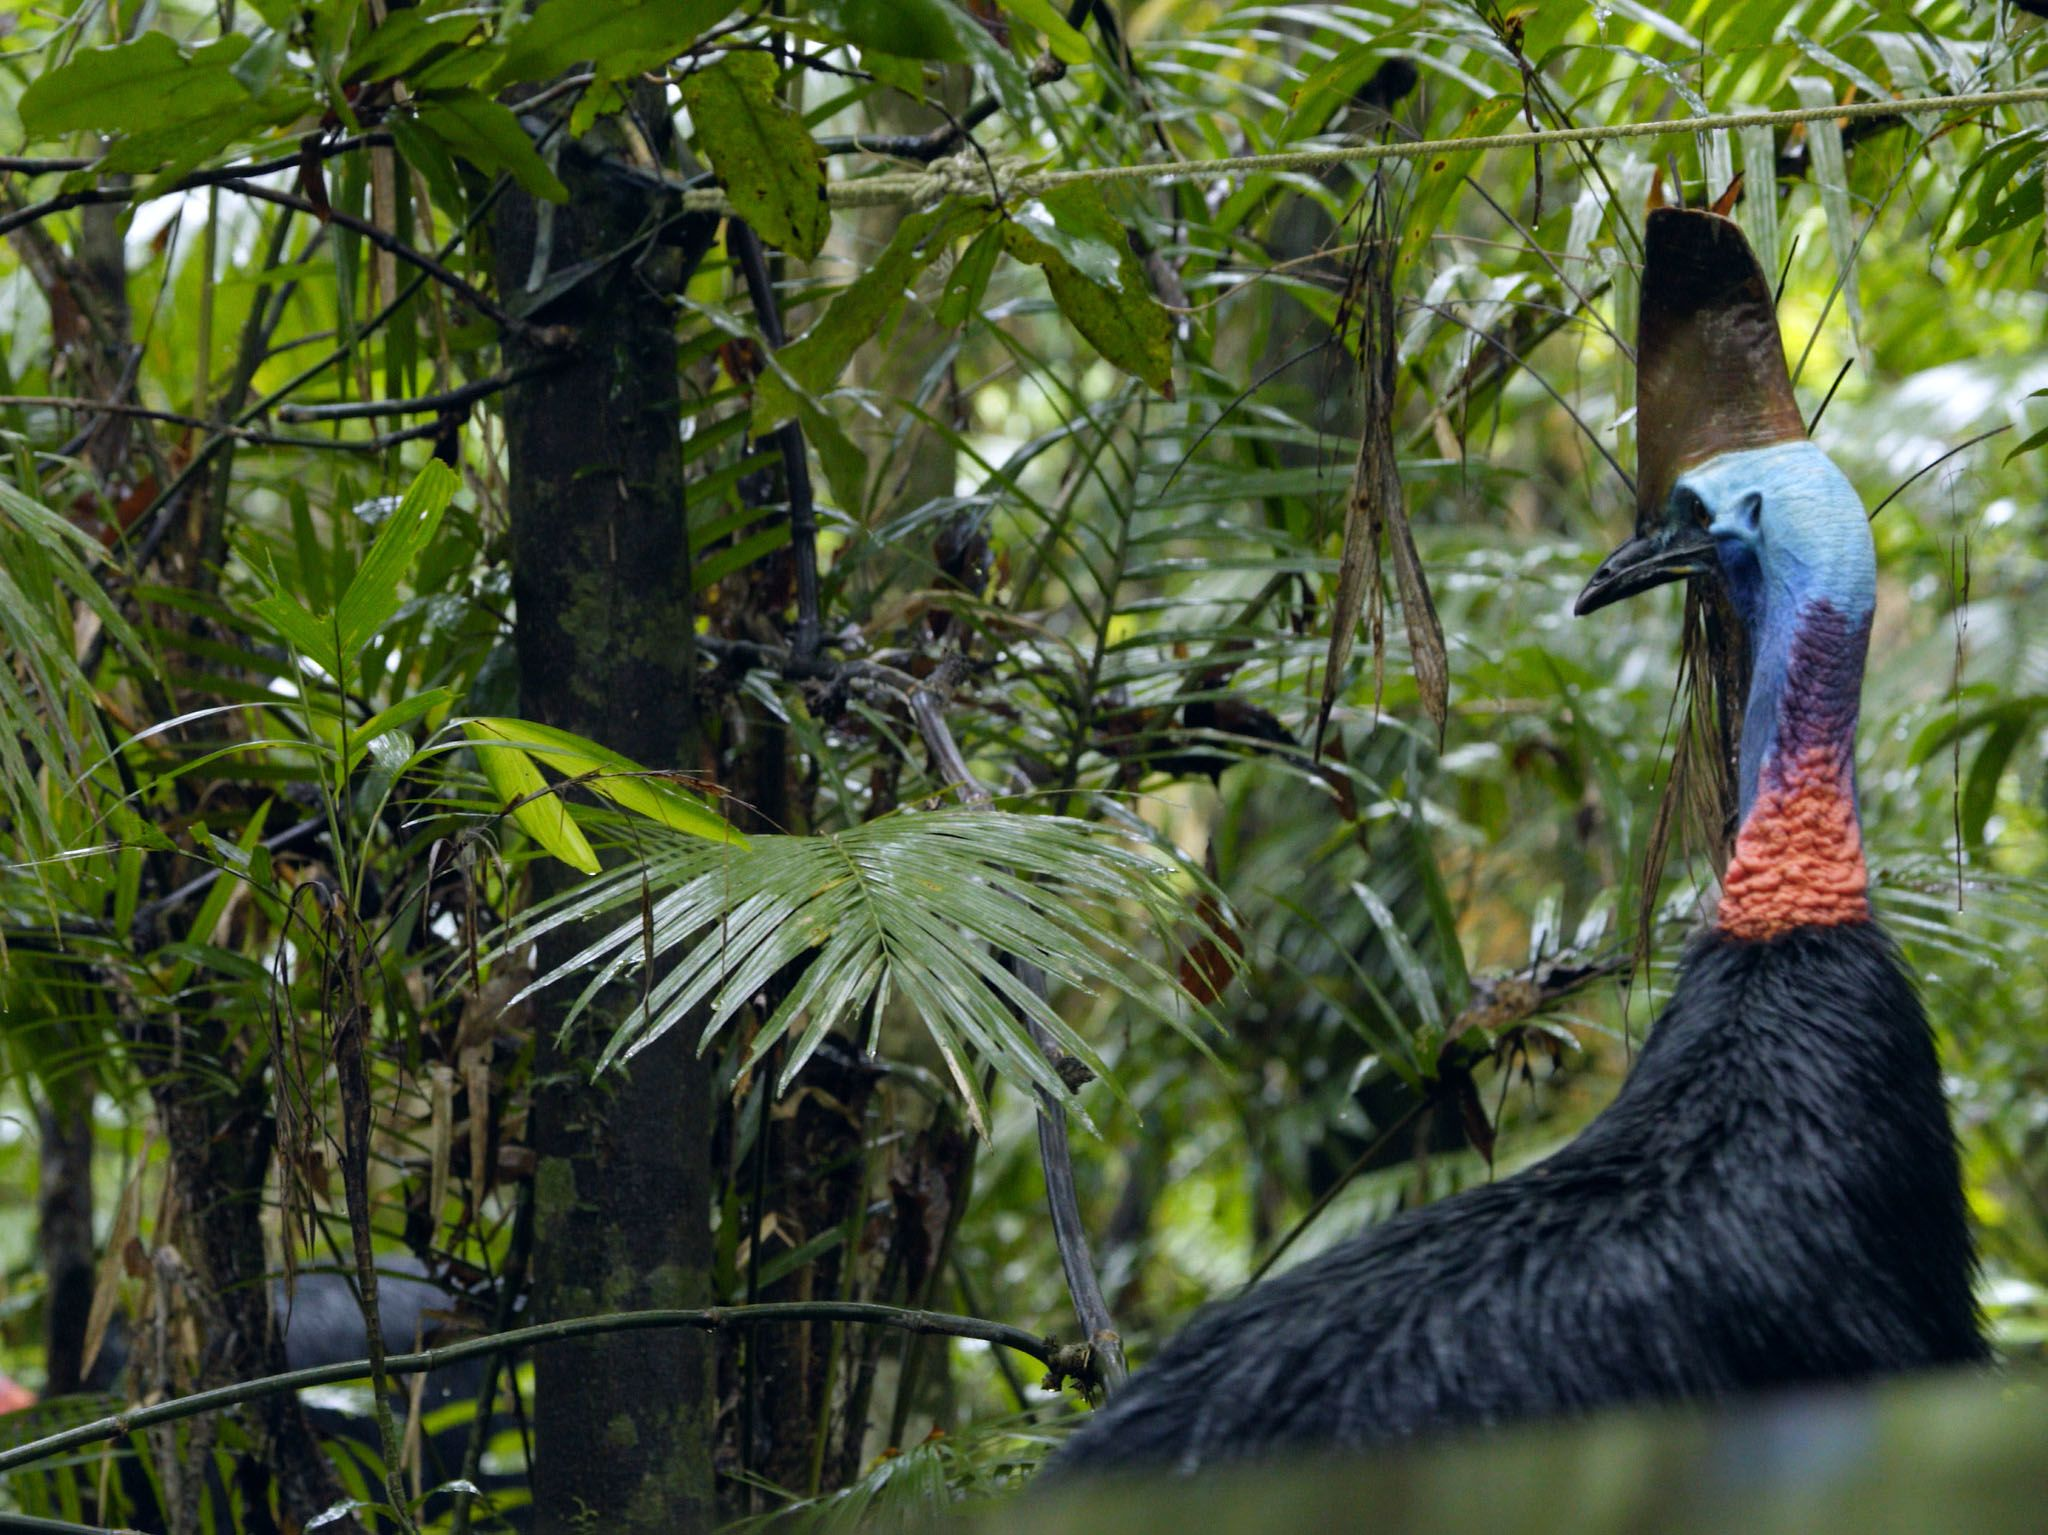 Queensland, Australia: Big Bertha in s confrontation with a male cassowary called Taiga, who can... [Photo of the day - June 2017]